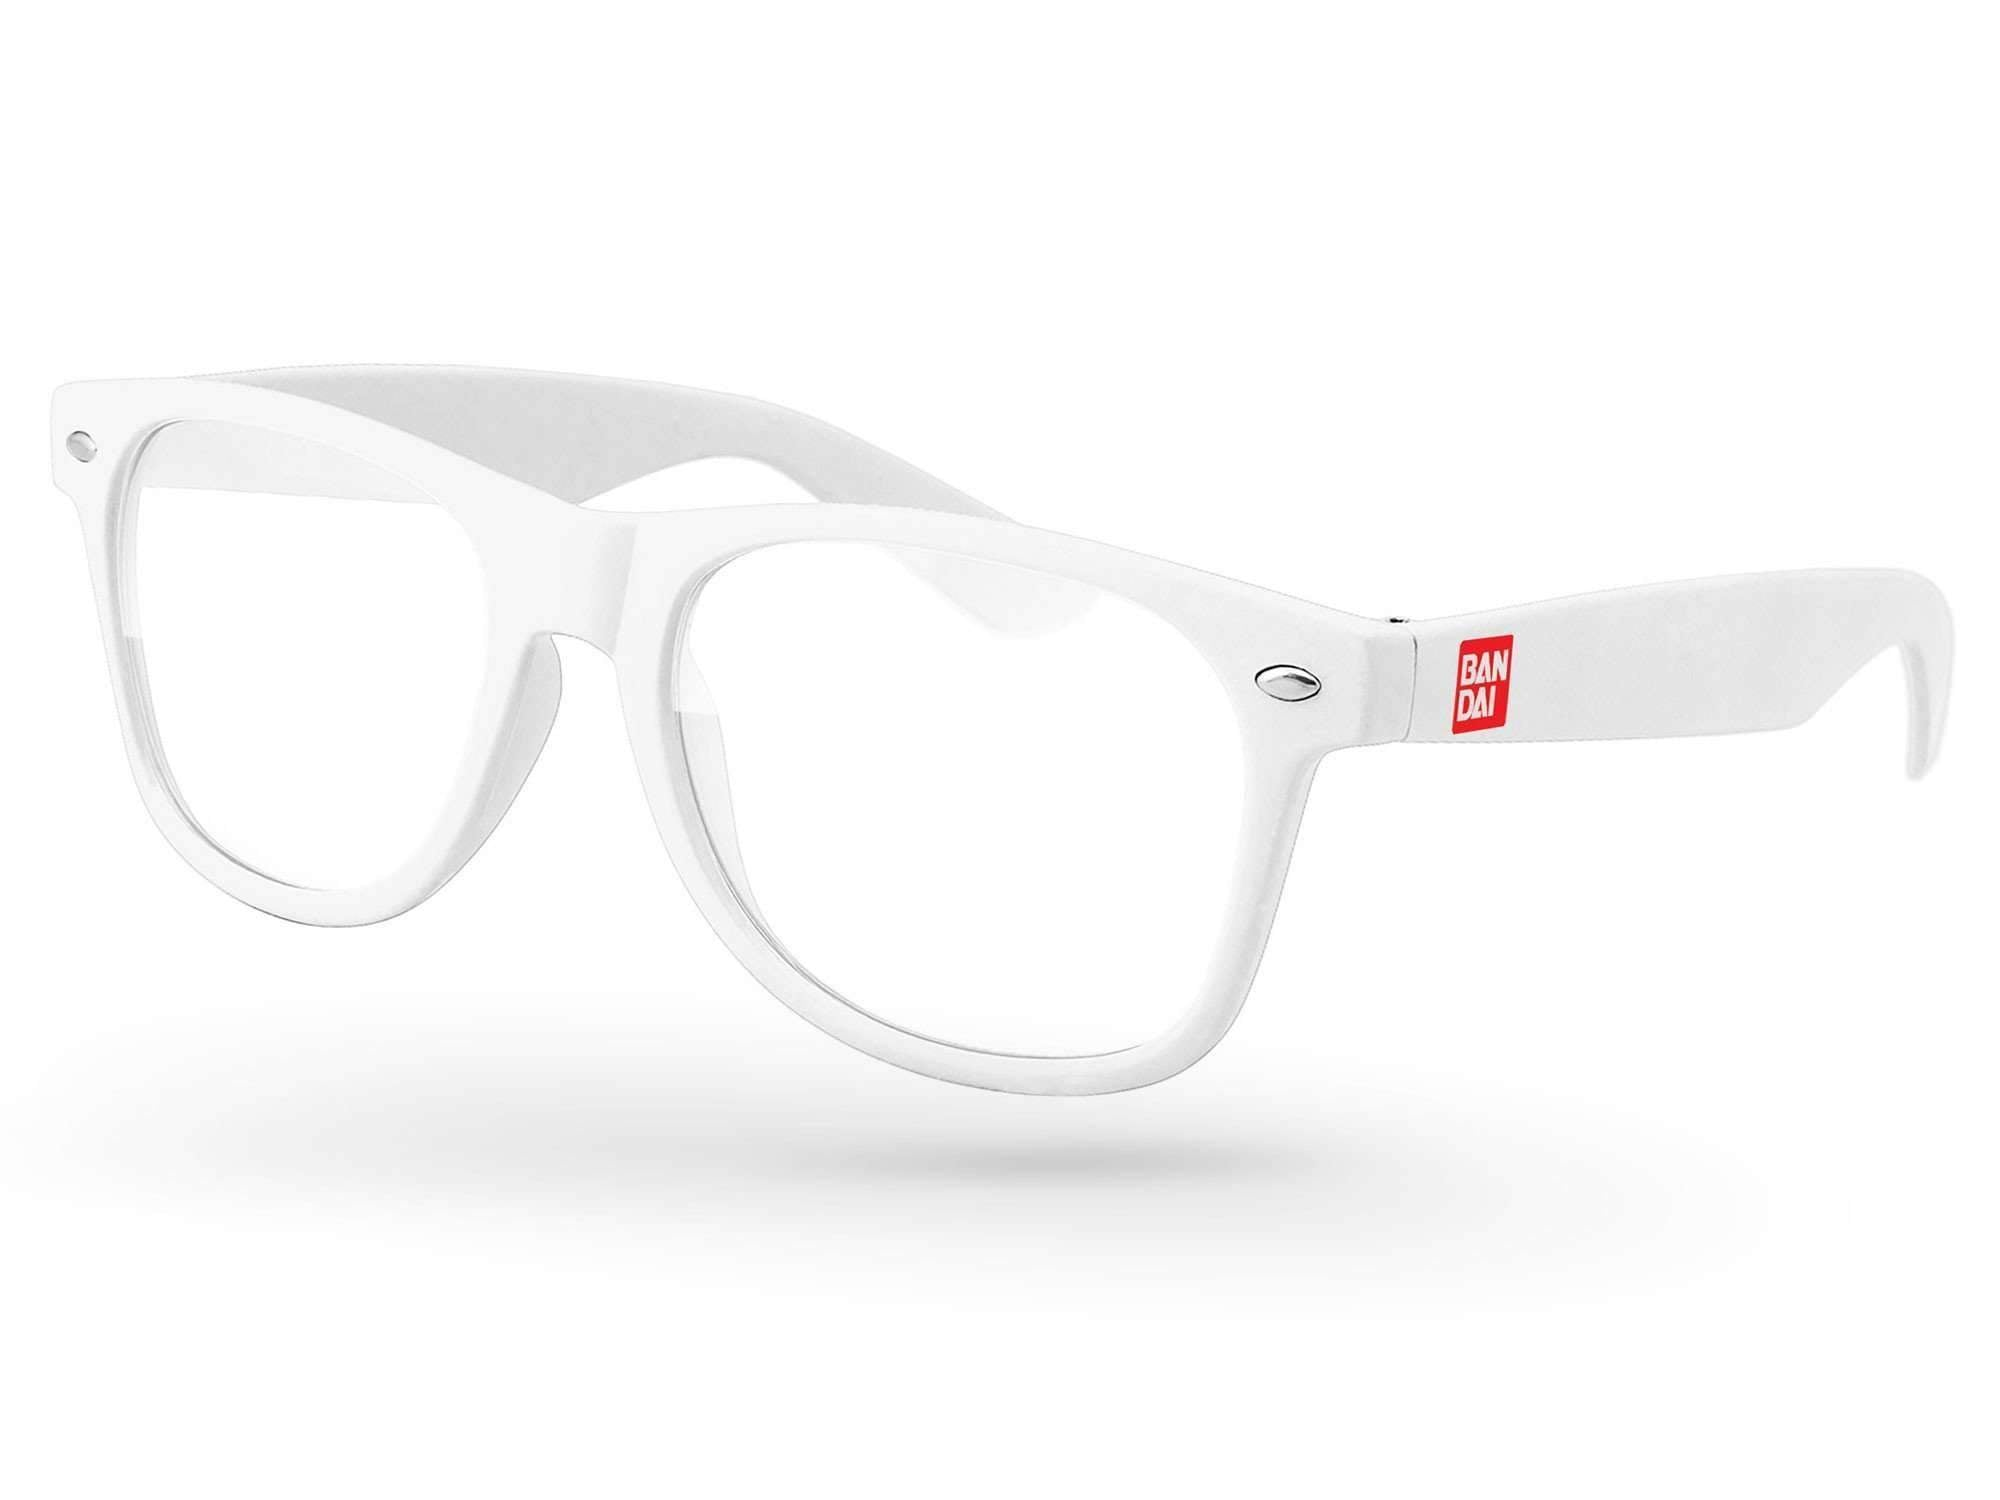 Retro Geek Glasses w/ 1-color temple imprint